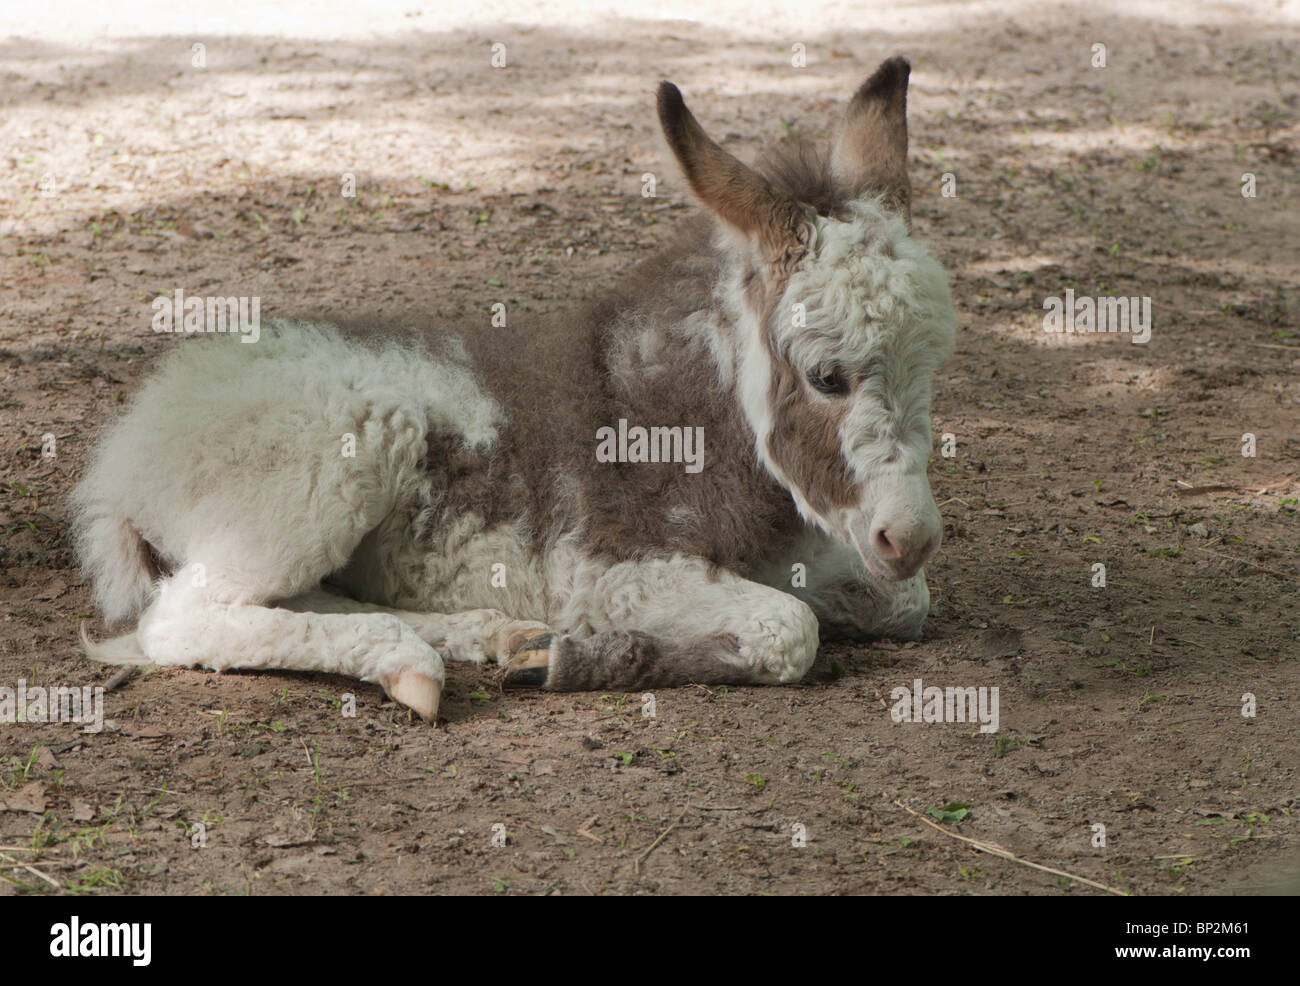 A young donkey lays on the ground during a period of rest. Stock Photo